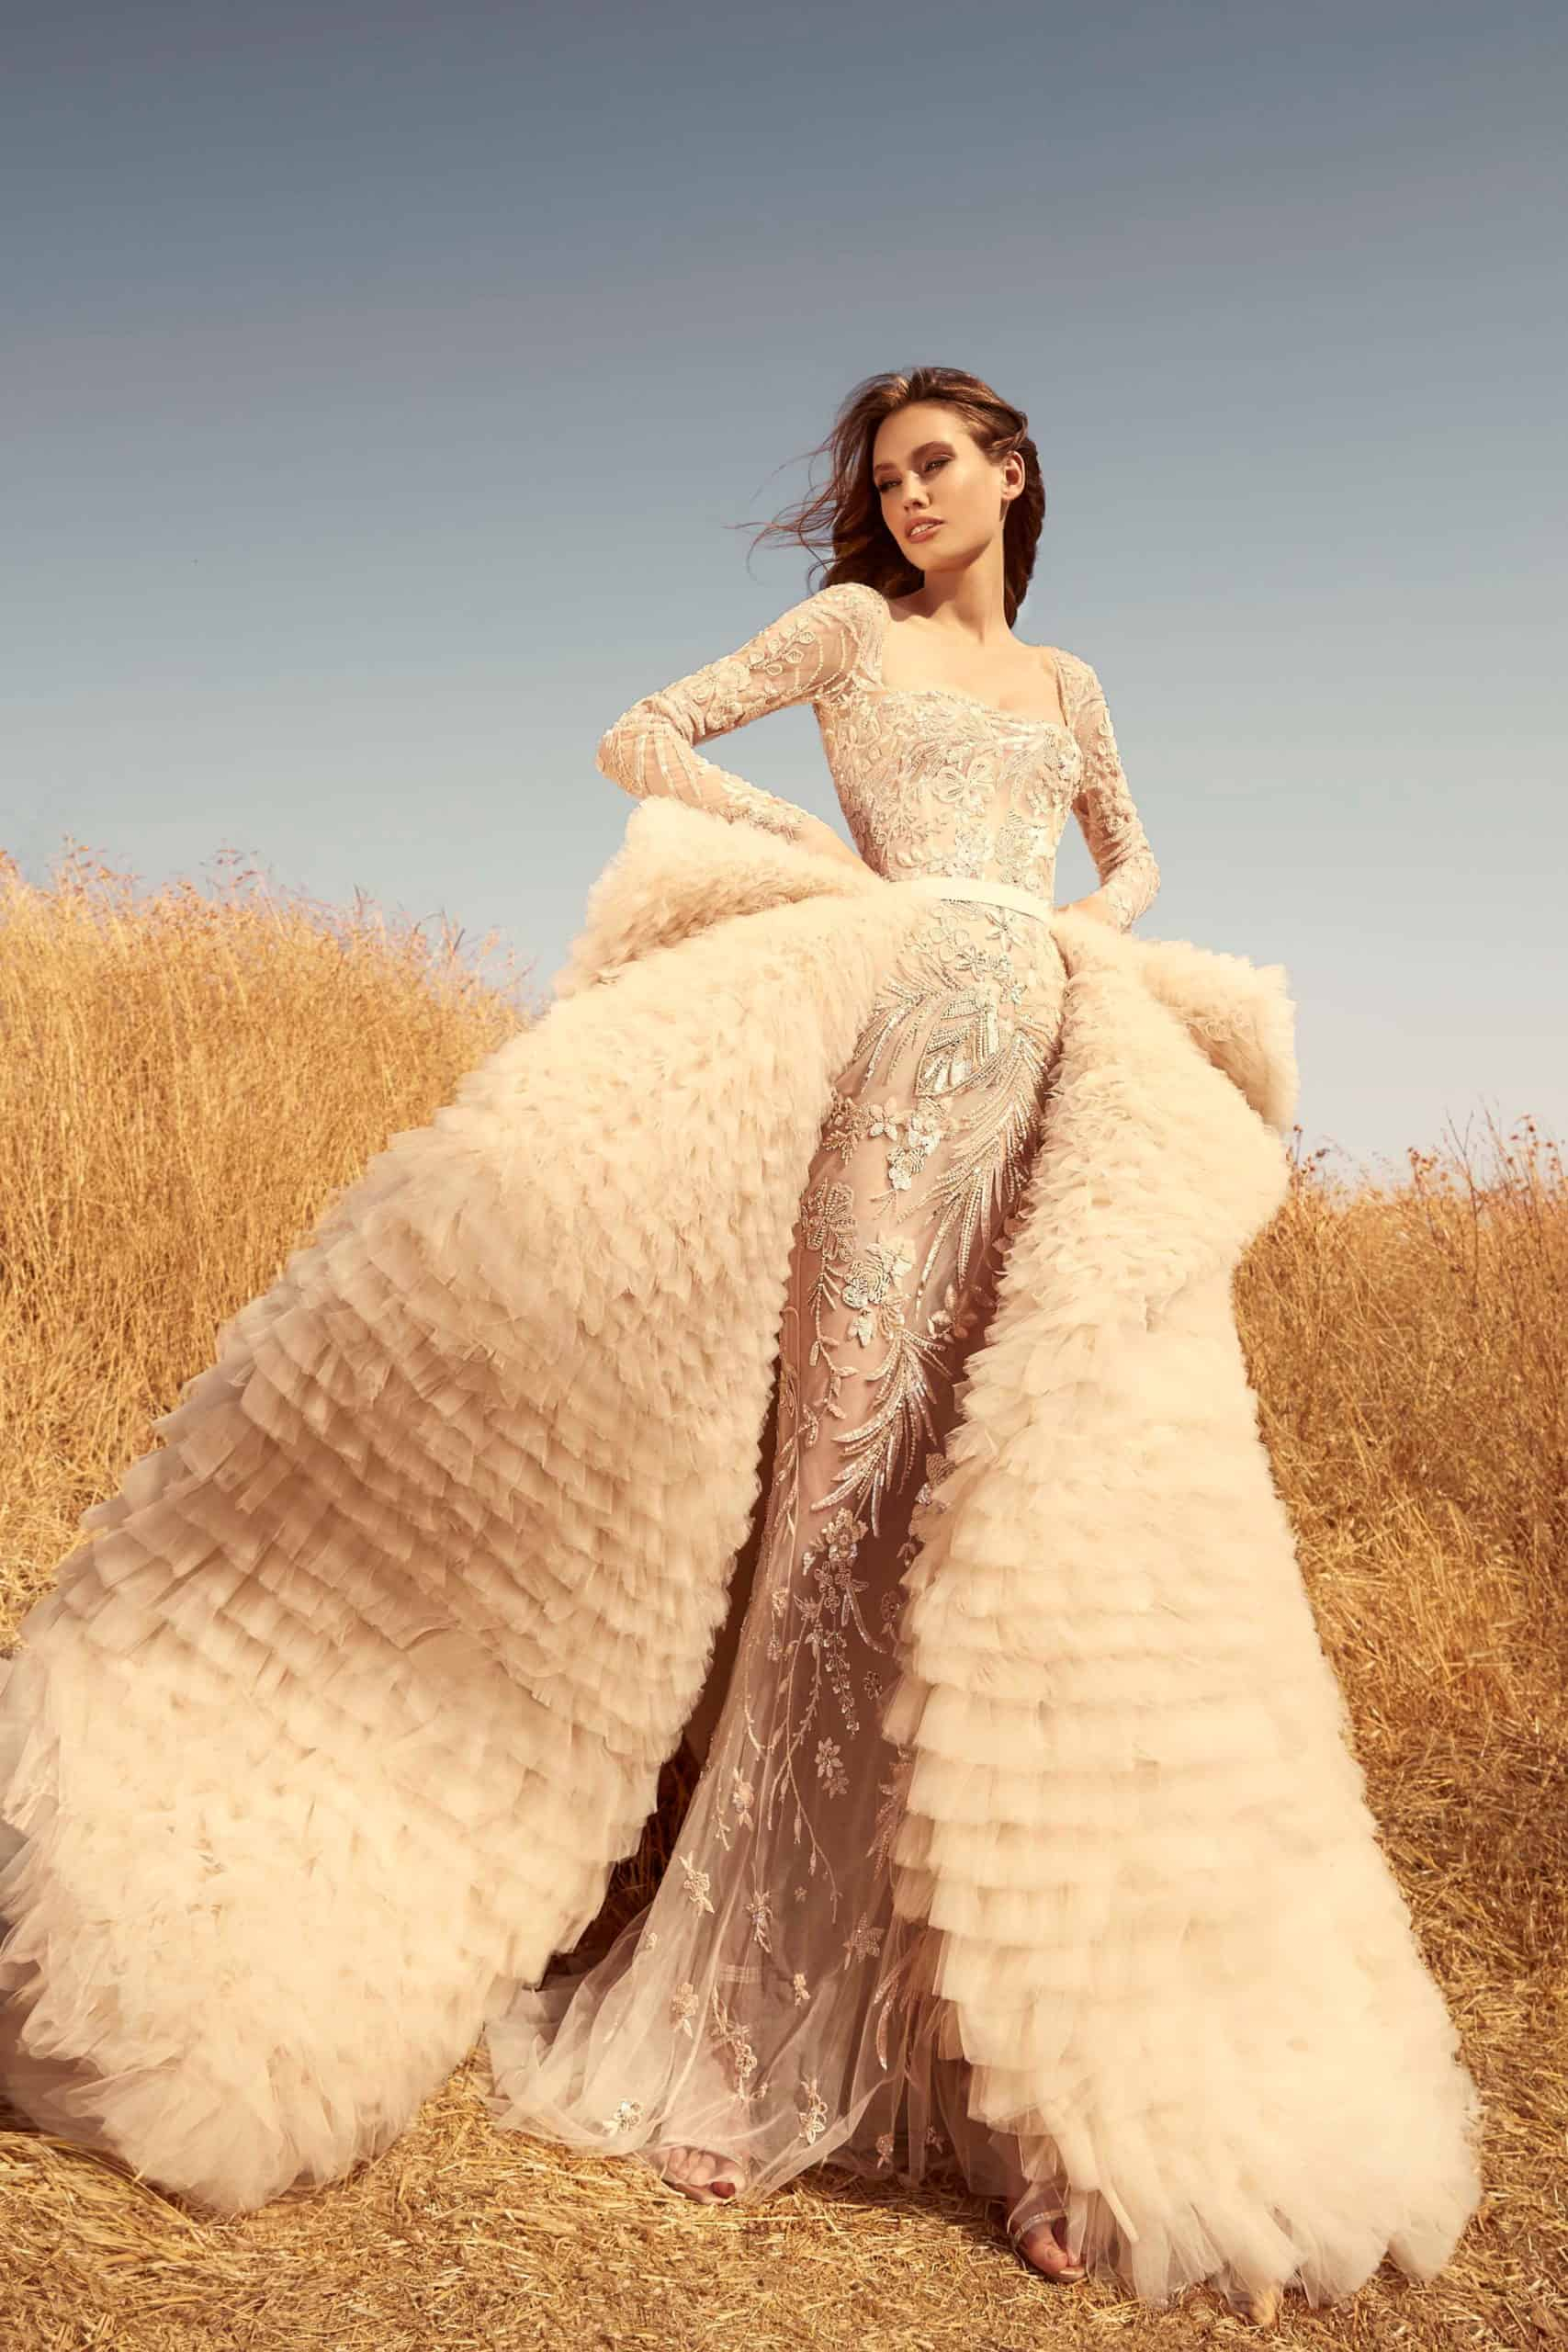 beige wedding dress with extra wide tulle skirt by Zuhair Murad